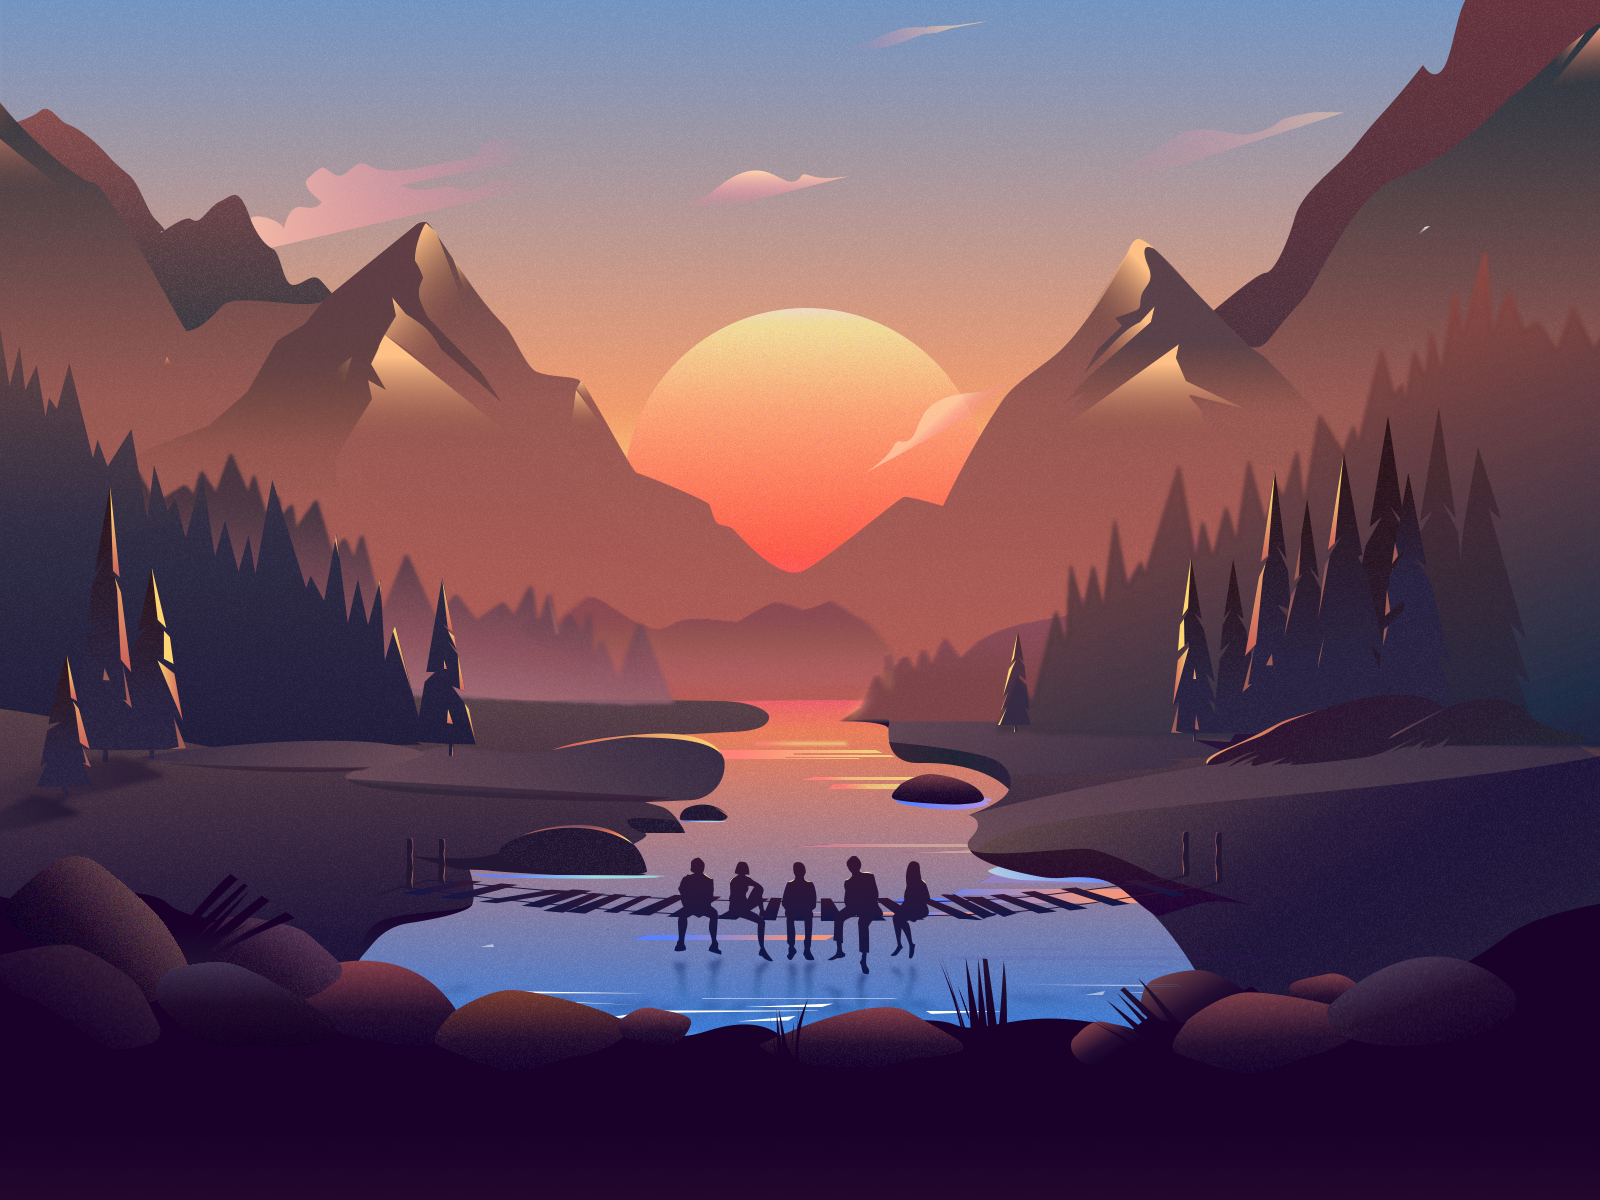 Afterglow Desktop Wallpaper Art Art Wallpaper Landscape Illustration